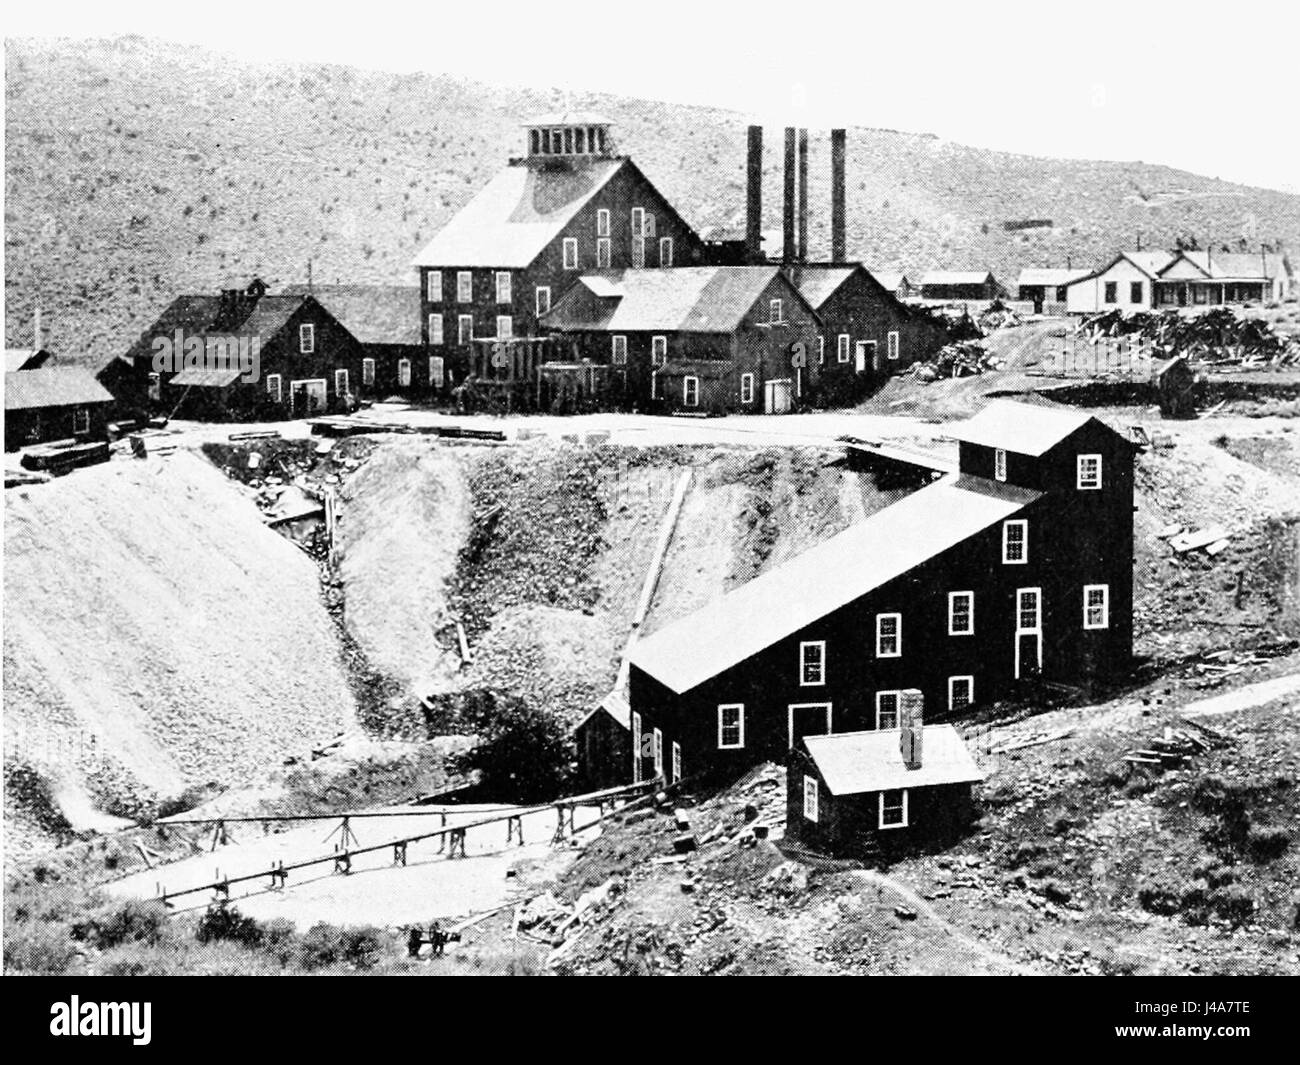 PSM V49 D771 Alta mine mill and dump on gold hill - Stock Image